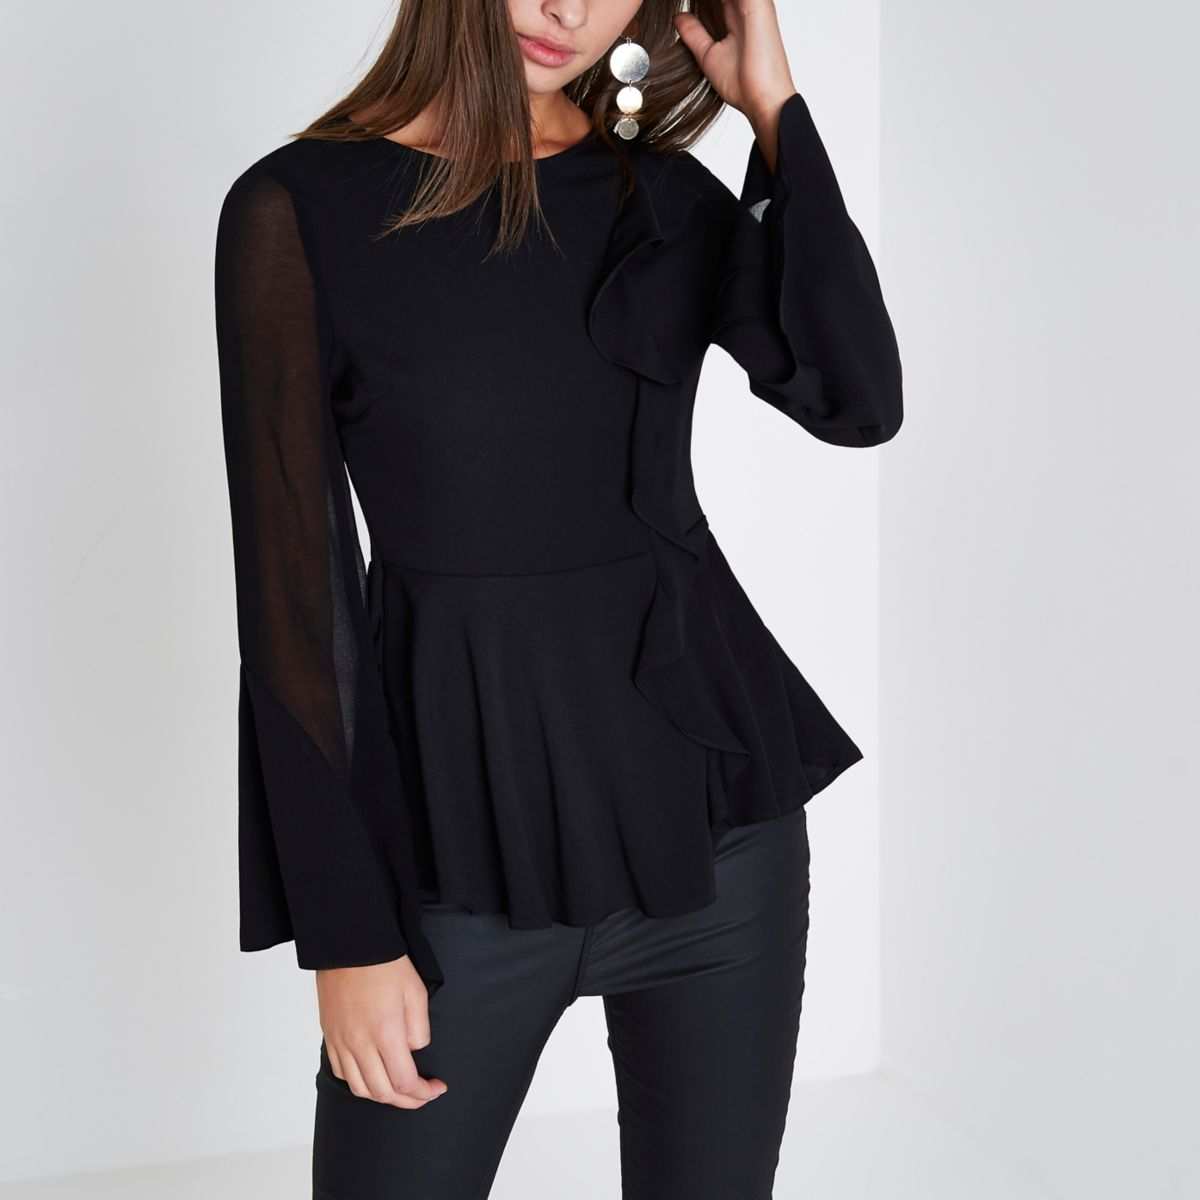 Shop Online at gtacashbank.ga for the Latest Womens Peplum Shirts, Tunics, Blouses, Halter Tops & More Womens Tops. FREE SHIPPING AVAILABLE! Macy's Presents: Sale $ Free ship at $ Enjoy Free Shipping at $49! See exclusions. Free ship at $49 (2) more like this.